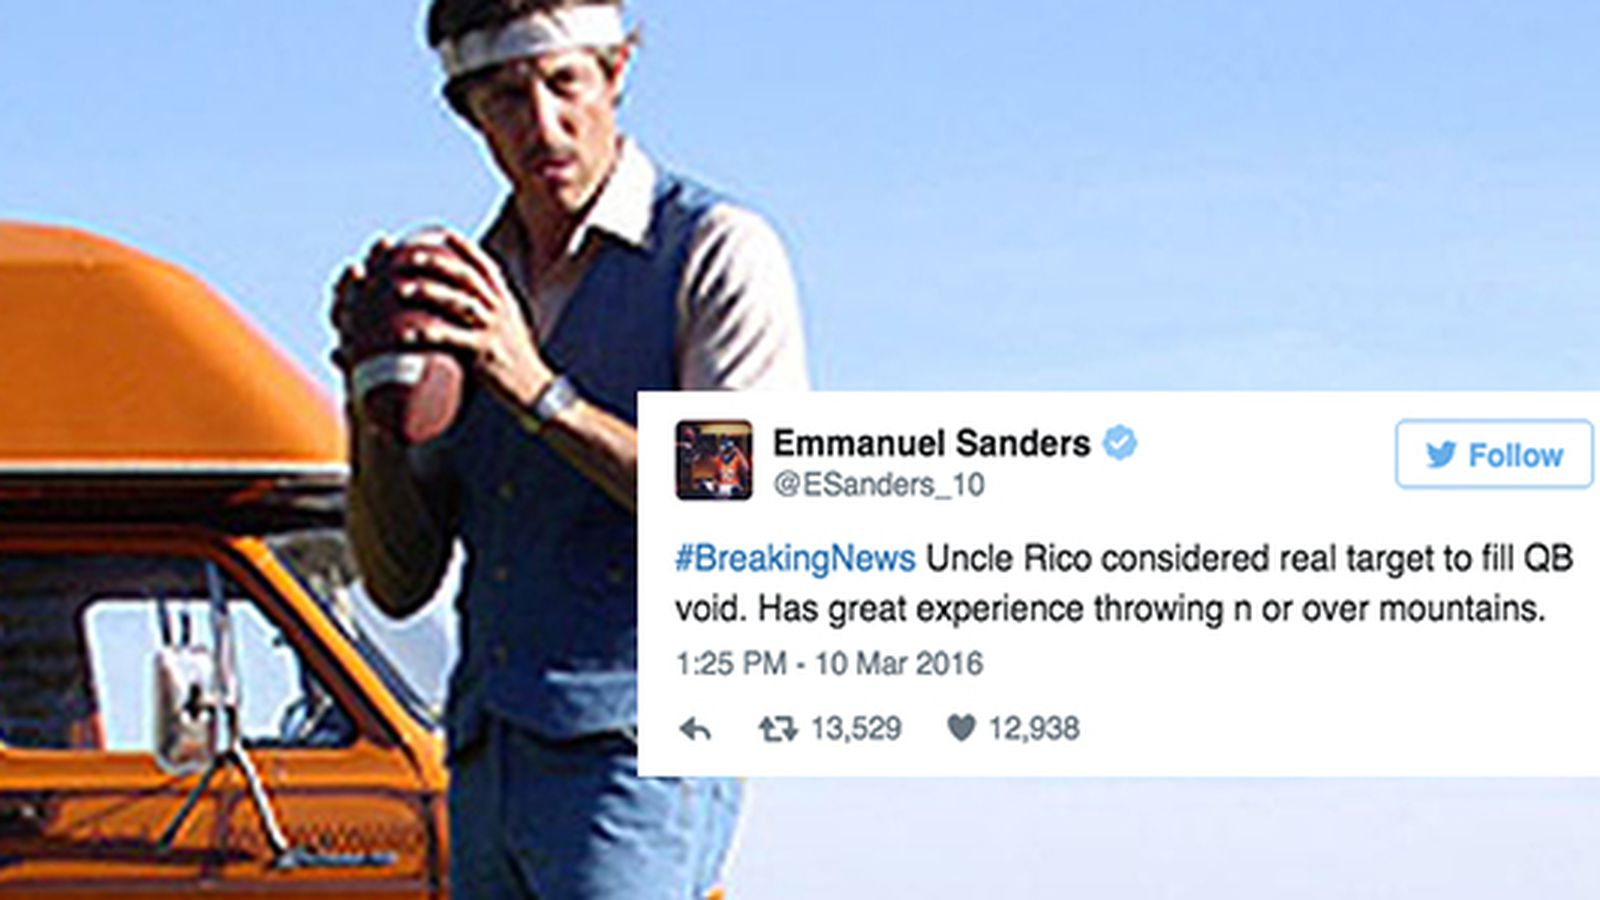 Emmanuel Sanders Is Scouting Uncle Rico And More Fictional